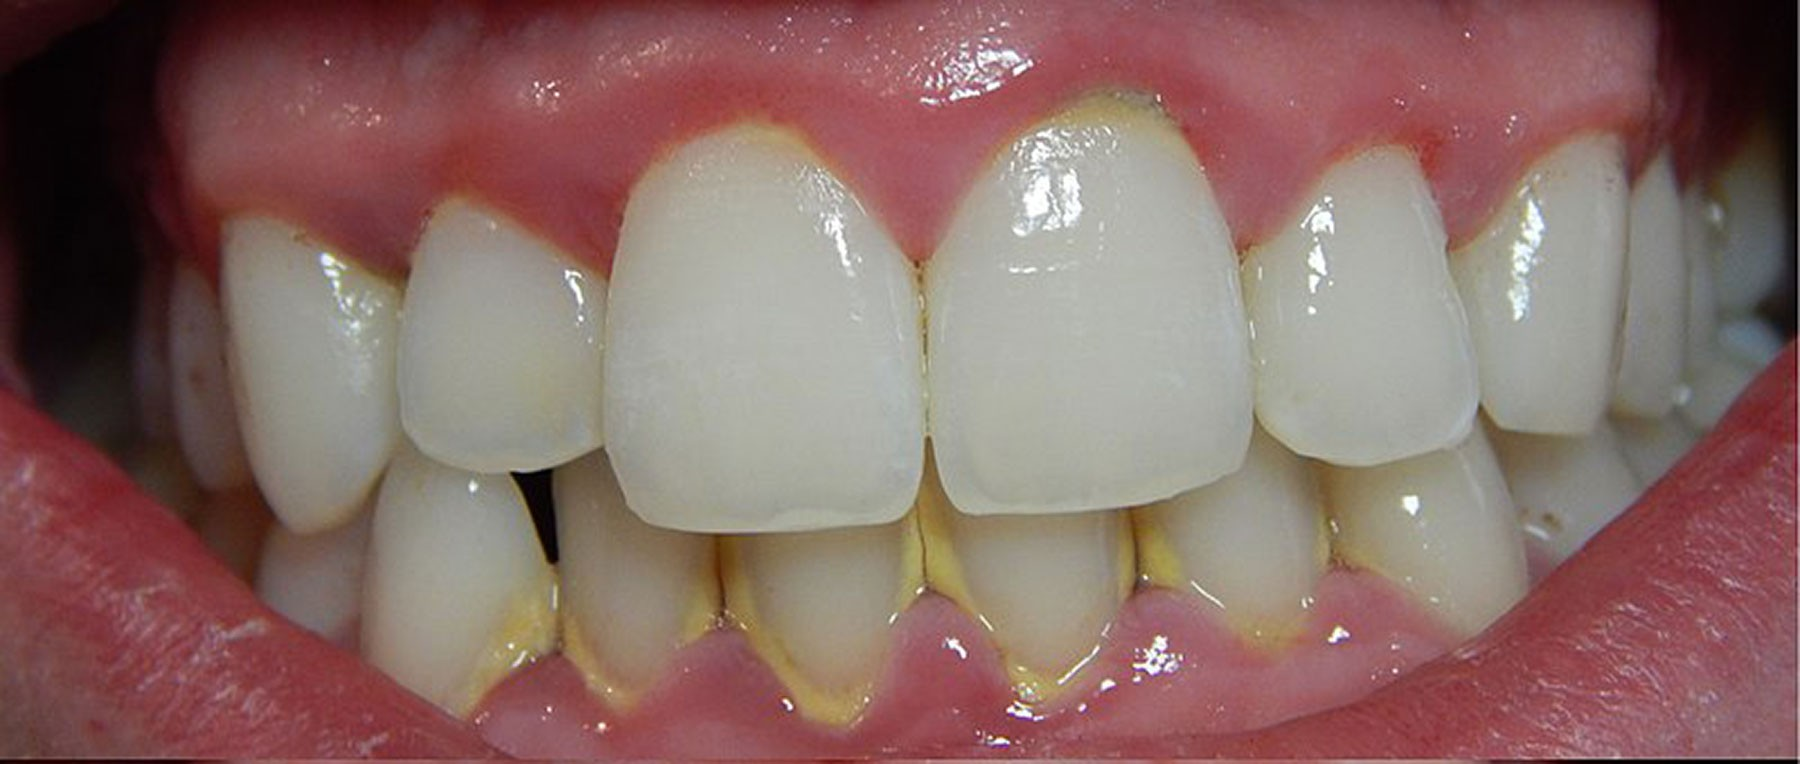 800px-Gingivitis-before-and-after-3